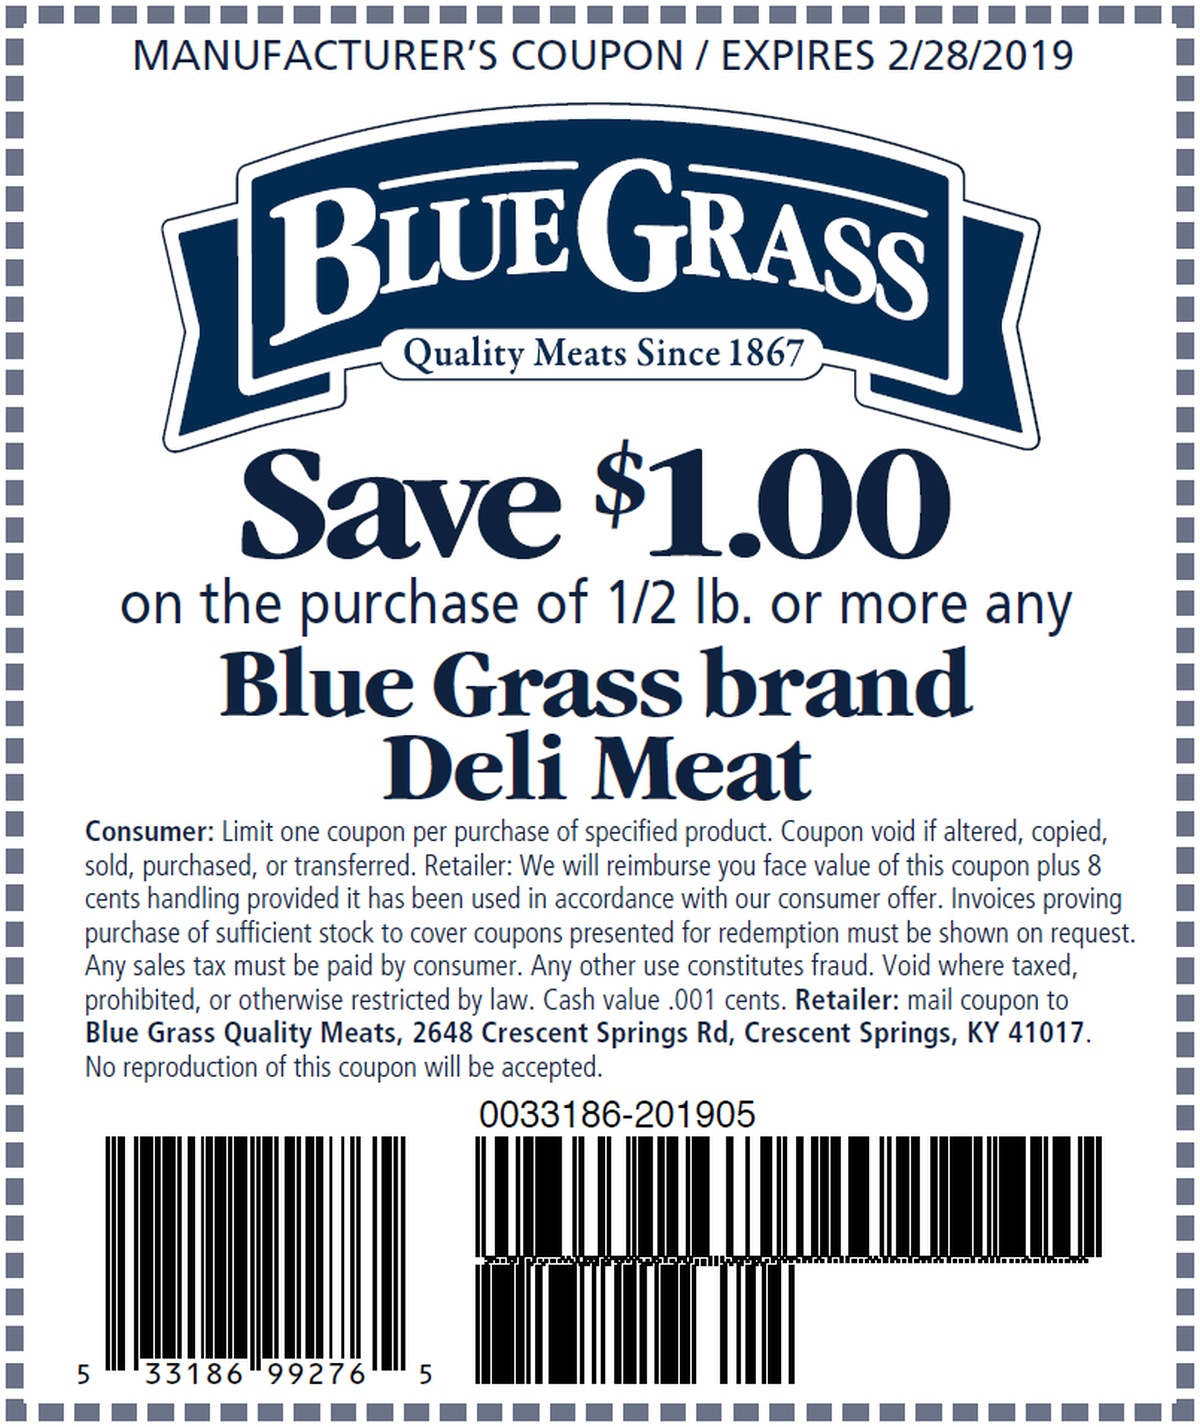 Save $1 on the purchase of 1/2 lb Blue Grass Deli Meat